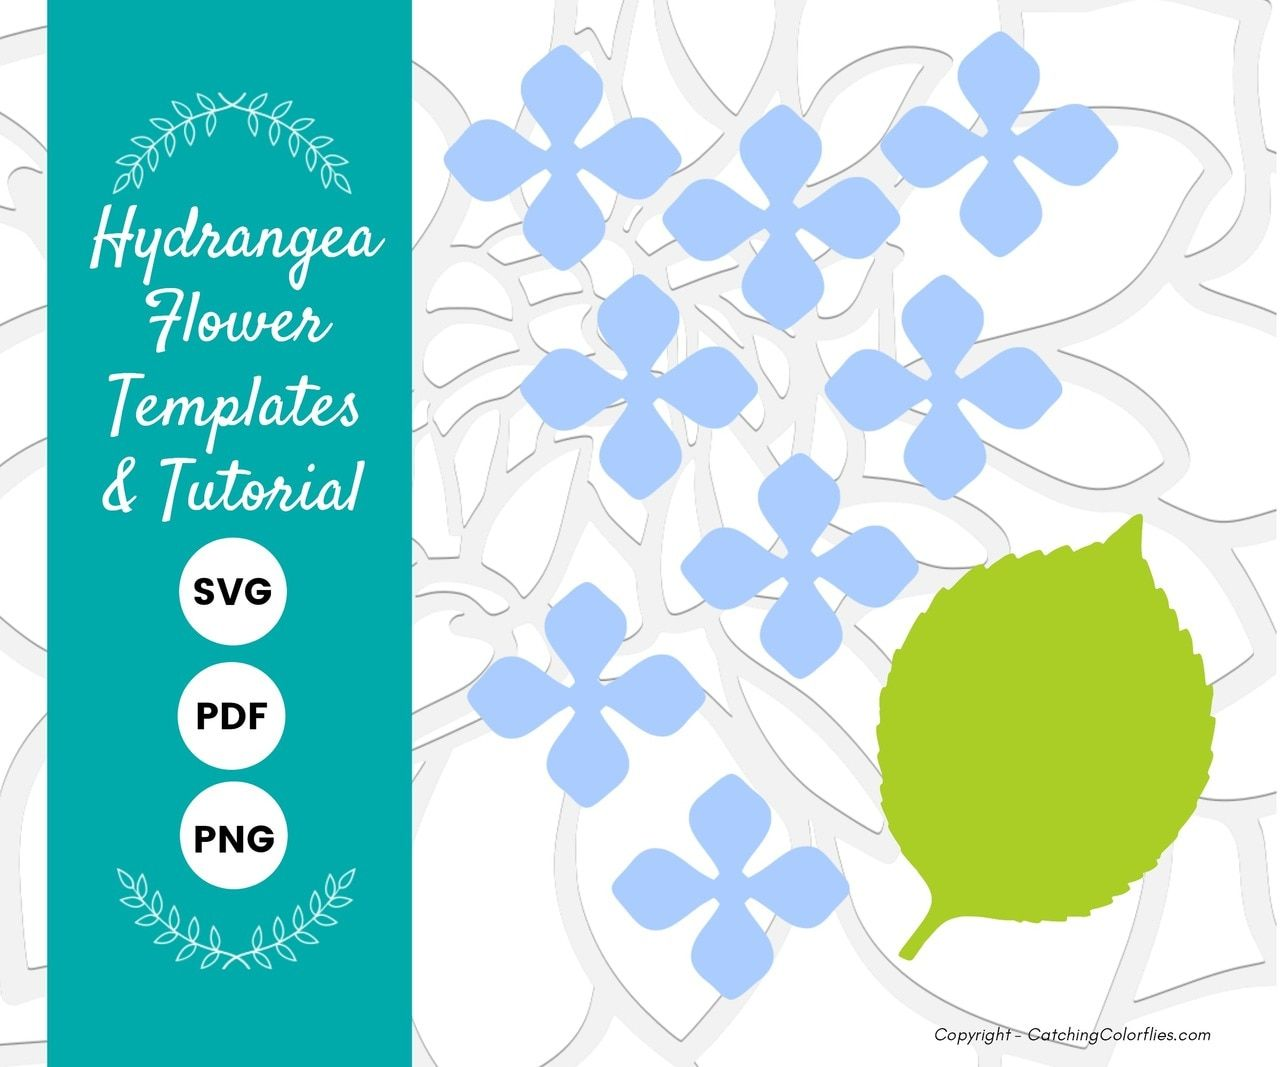 Hydrangea Paper Flower Templates Flower Svg Files Flower Template Paper Flower Template